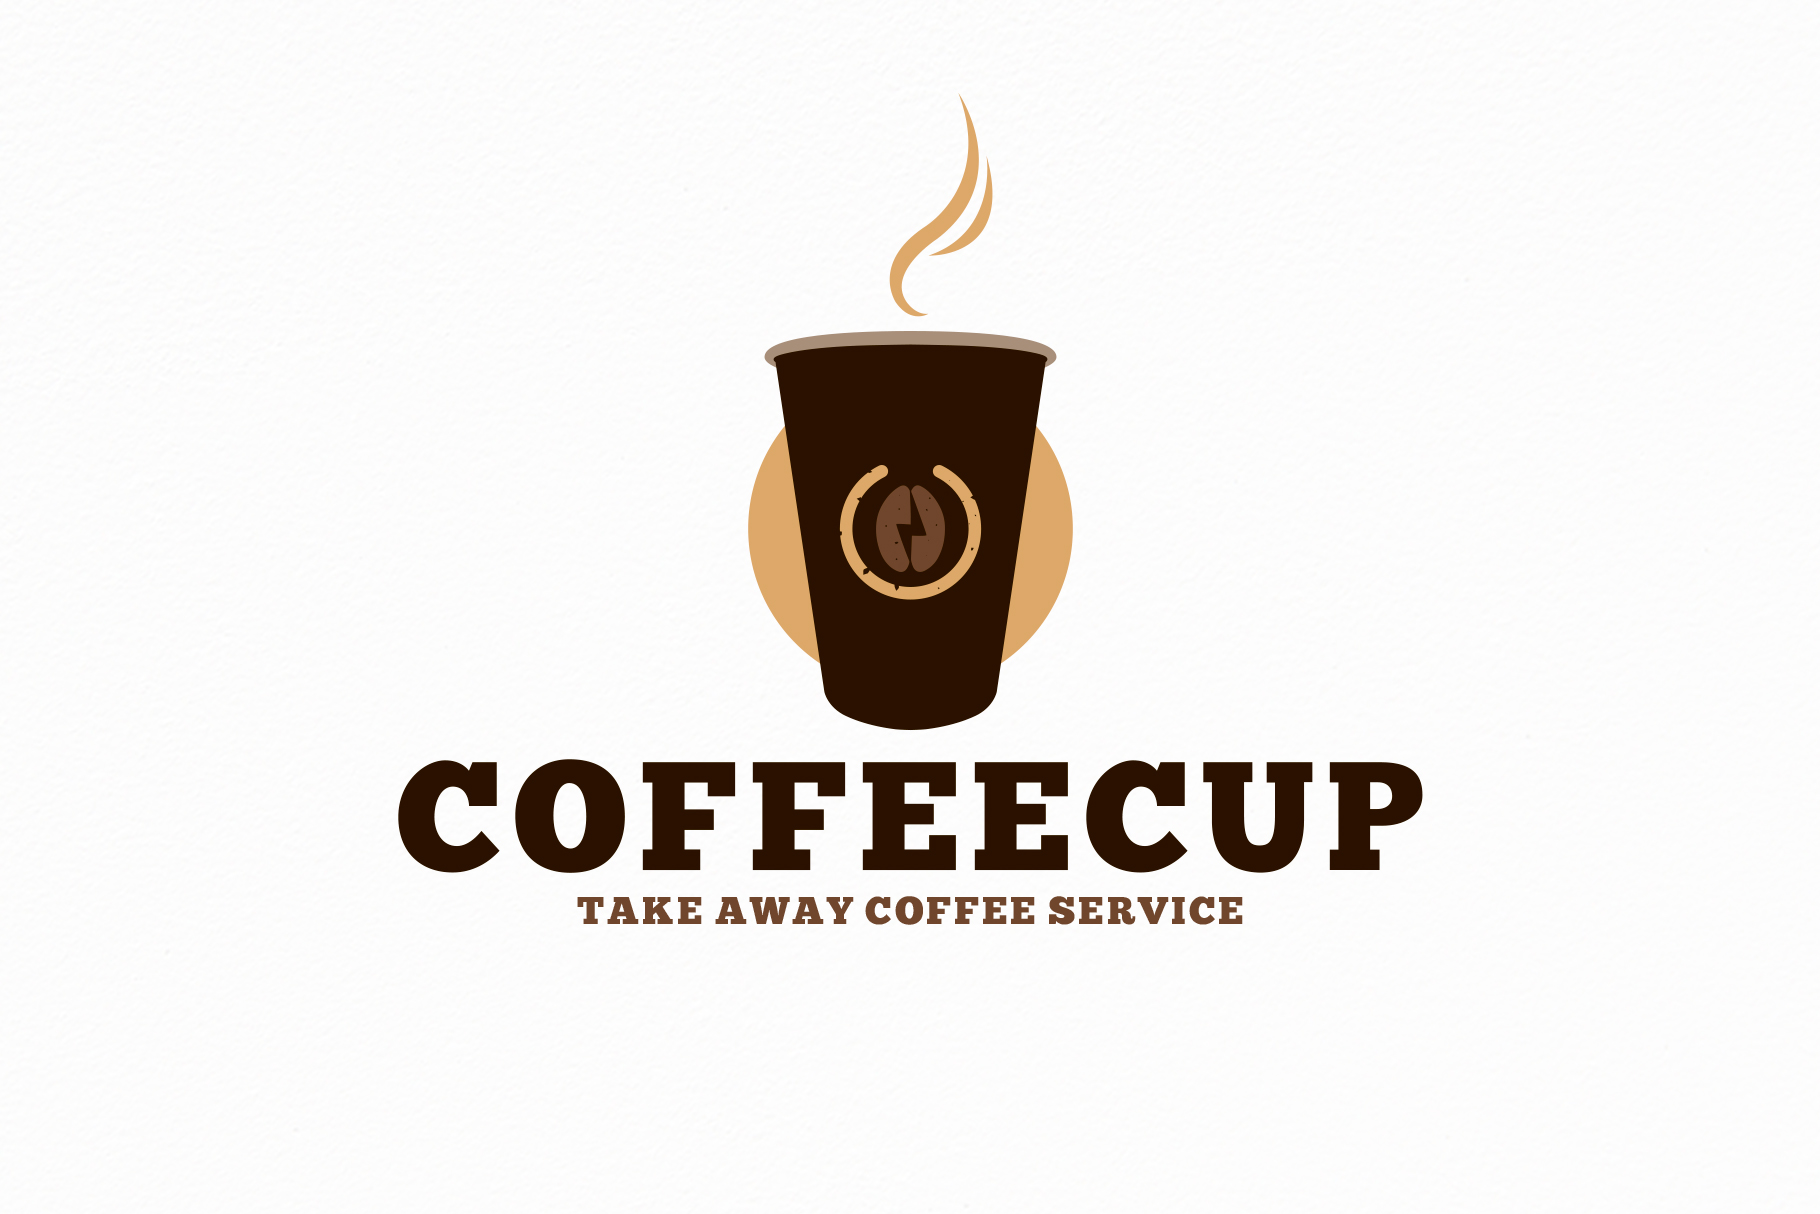 Download Free Take Away Coffee Shop Logo Template Graphic By Vectorwithin for Cricut Explore, Silhouette and other cutting machines.